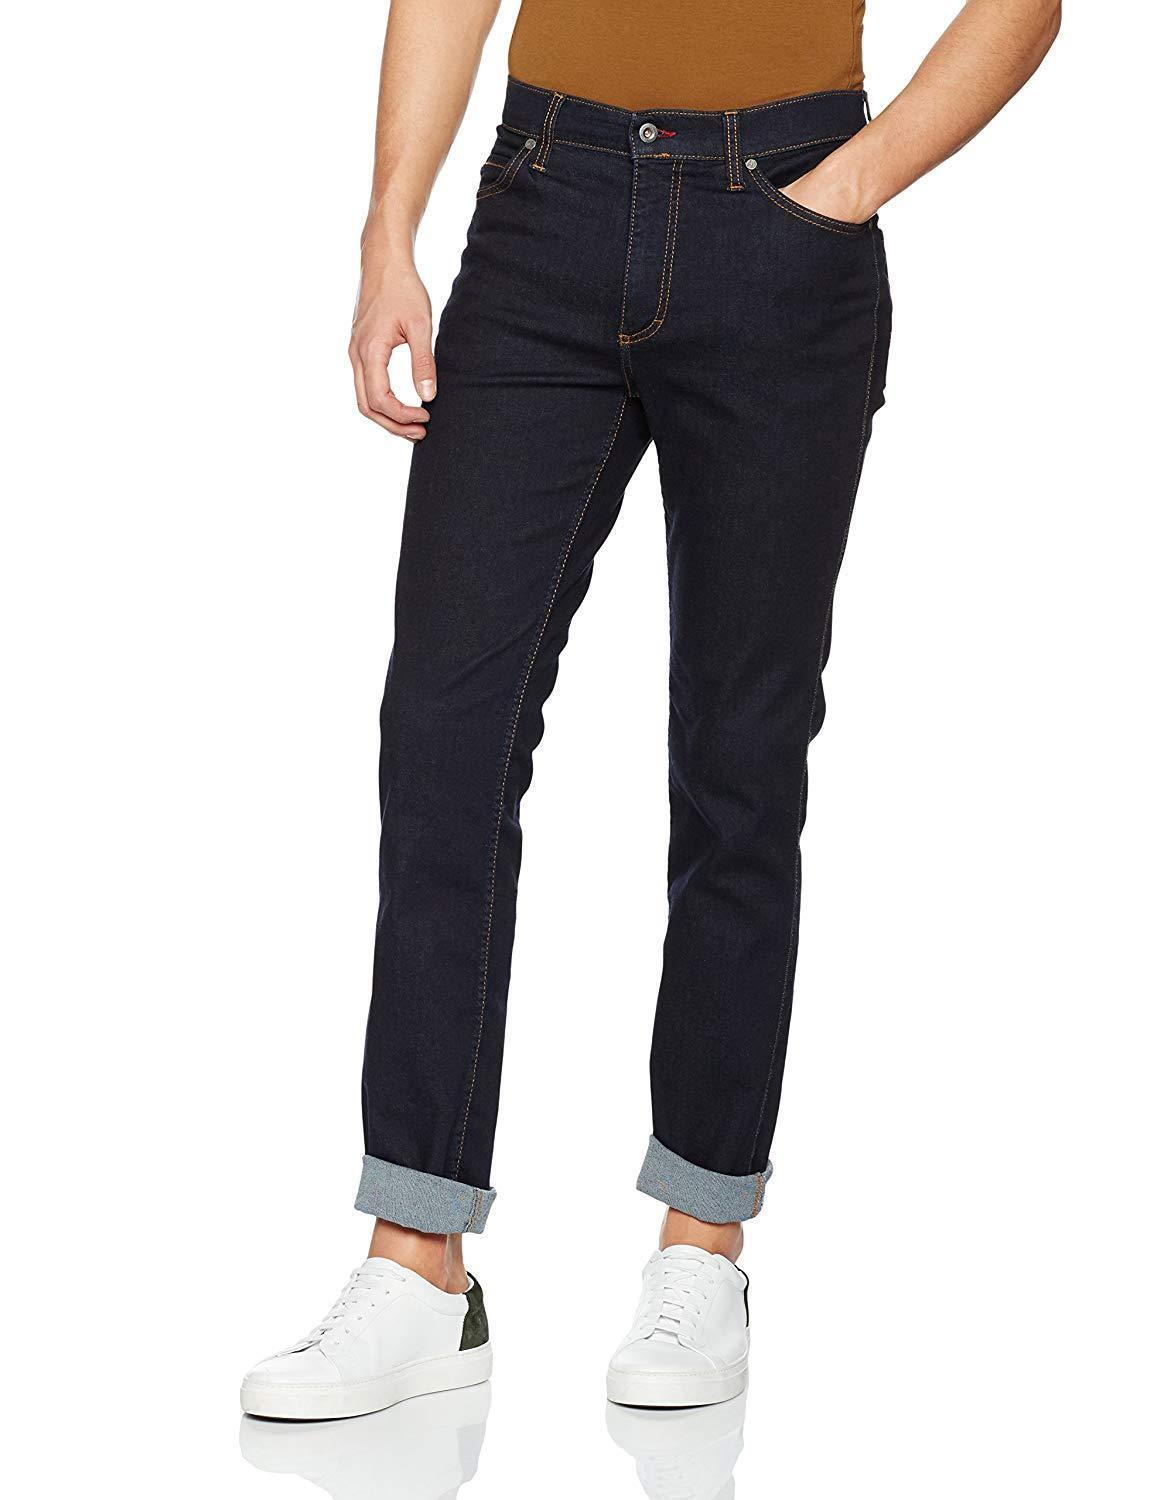 Mustang Tramper Taperot be flexible Jeans, W30 -to- W42   rinsed washed  | Angemessener Preis